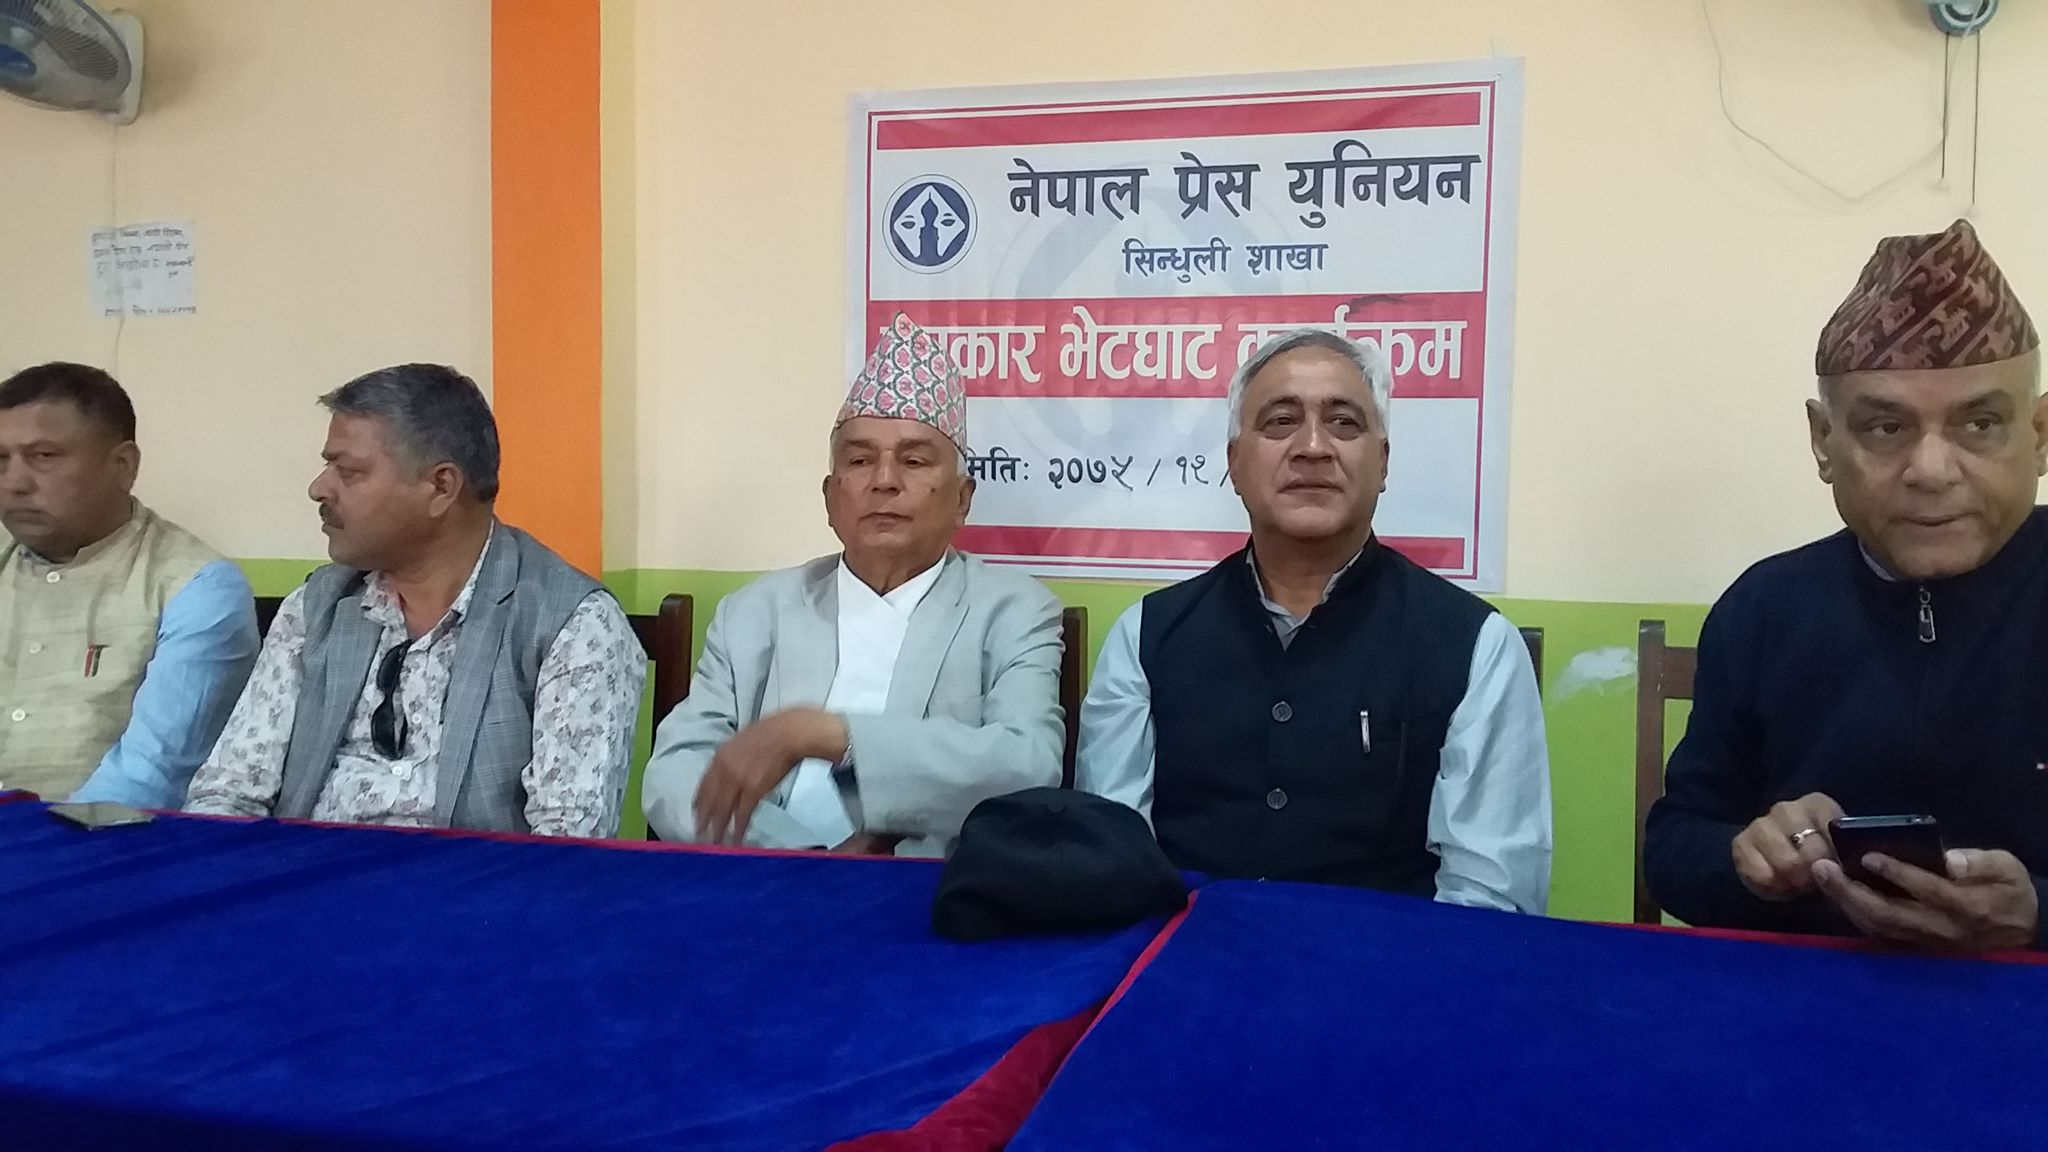 Govt's attempt to consolidate power threatening democracy, says, Leader Poudel